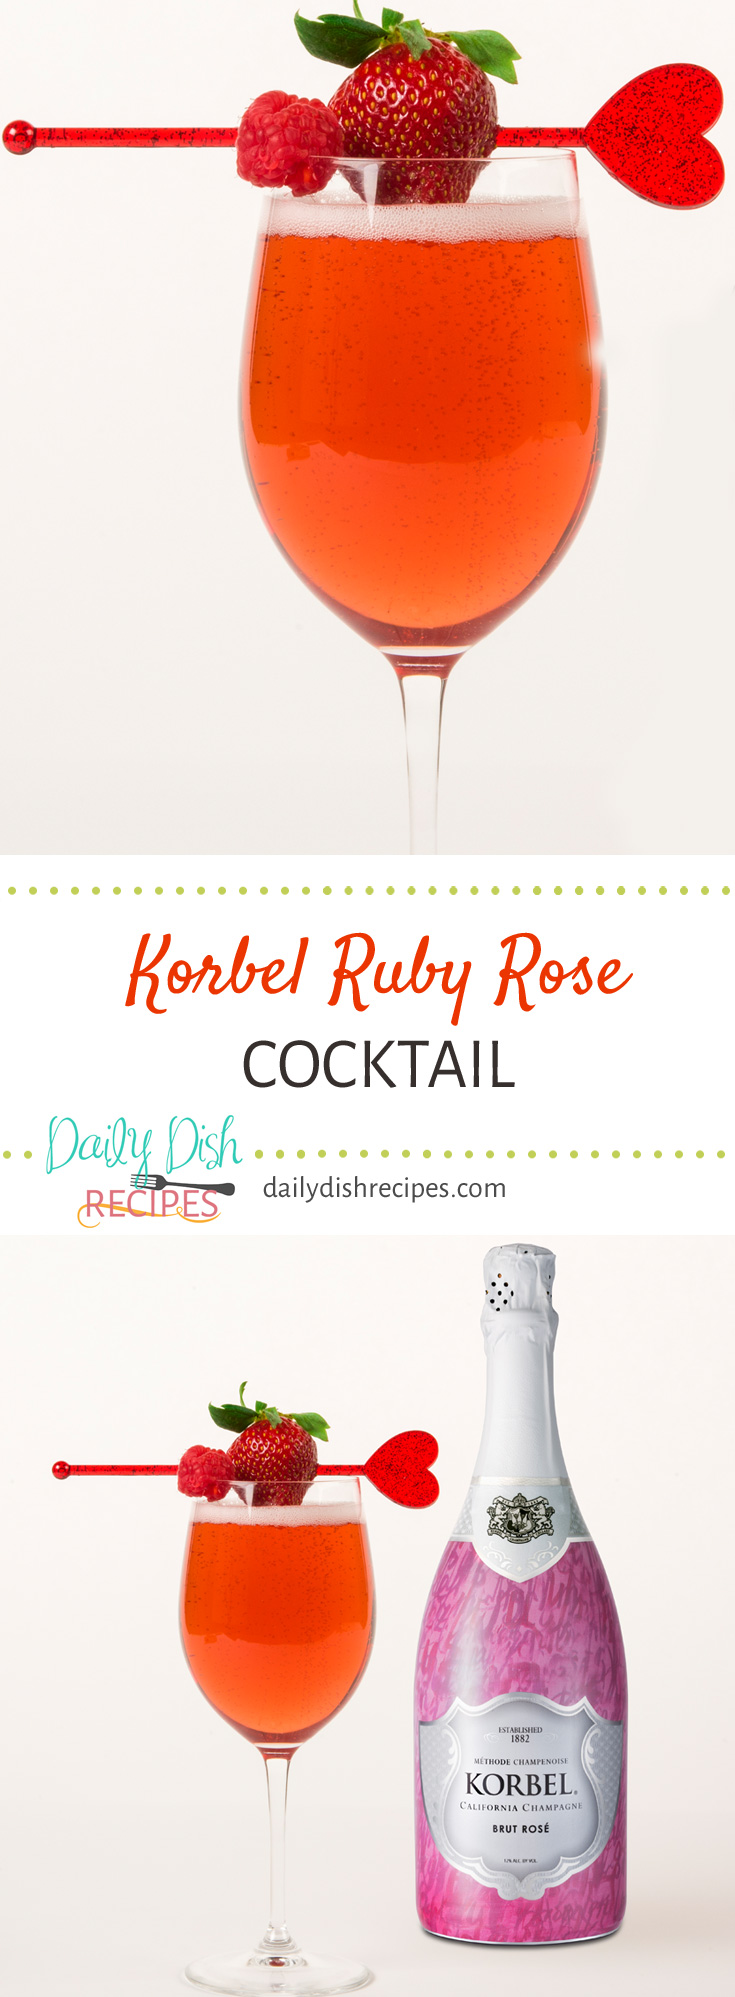 Korbel's Ruby Rose Cocktail - a flavorful berry cocktail - a little sweet, a little tart but oh so wonderfully refreshing and delicious!